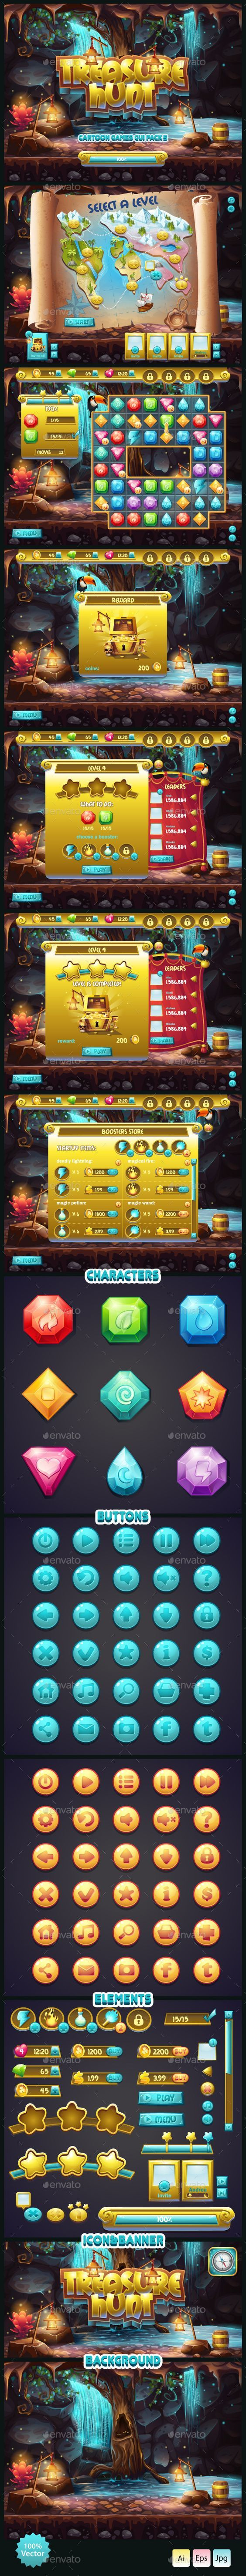 GUI Treasure Hunt - User Interfaces #Game #Assets | Download http://graphicriver.net/item/gui-treasure-hunt/10638211?ref=sinzo: